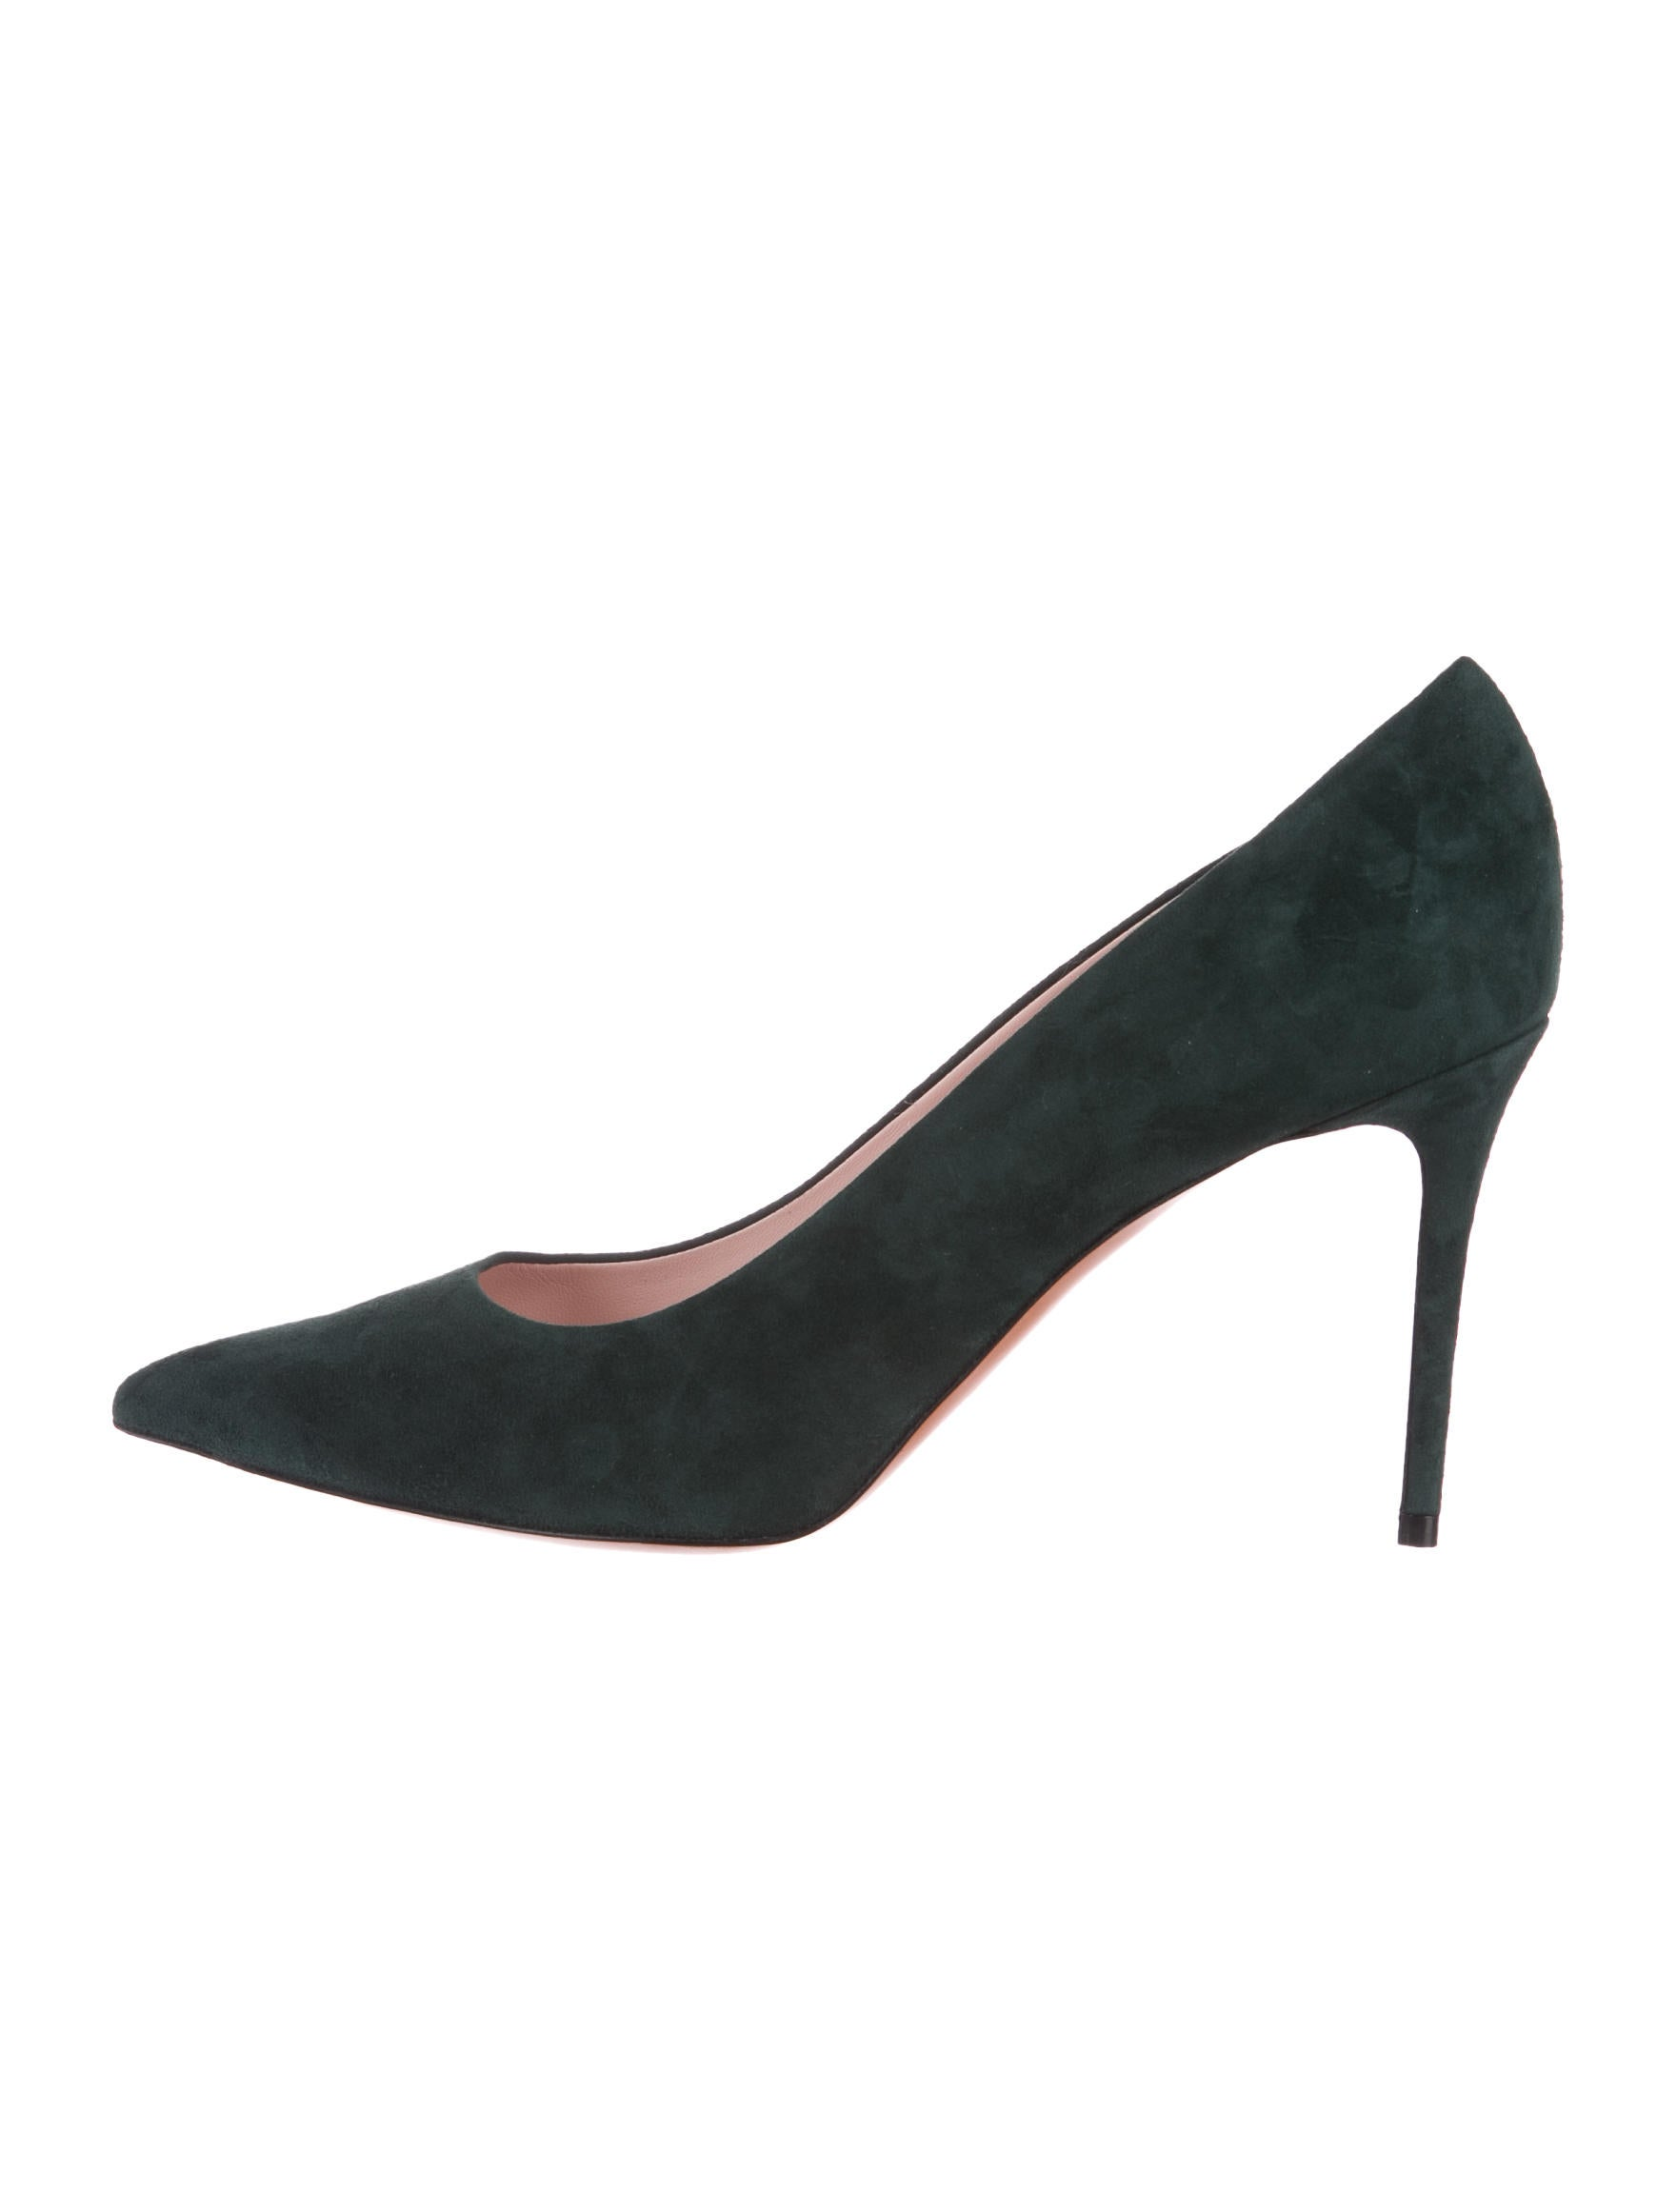 Céline Suede Pointed-Toe Pumps w/ Tags free shipping footlocker pictures Grey outlet store online pay with paypal sale online Qekp0ttPCD